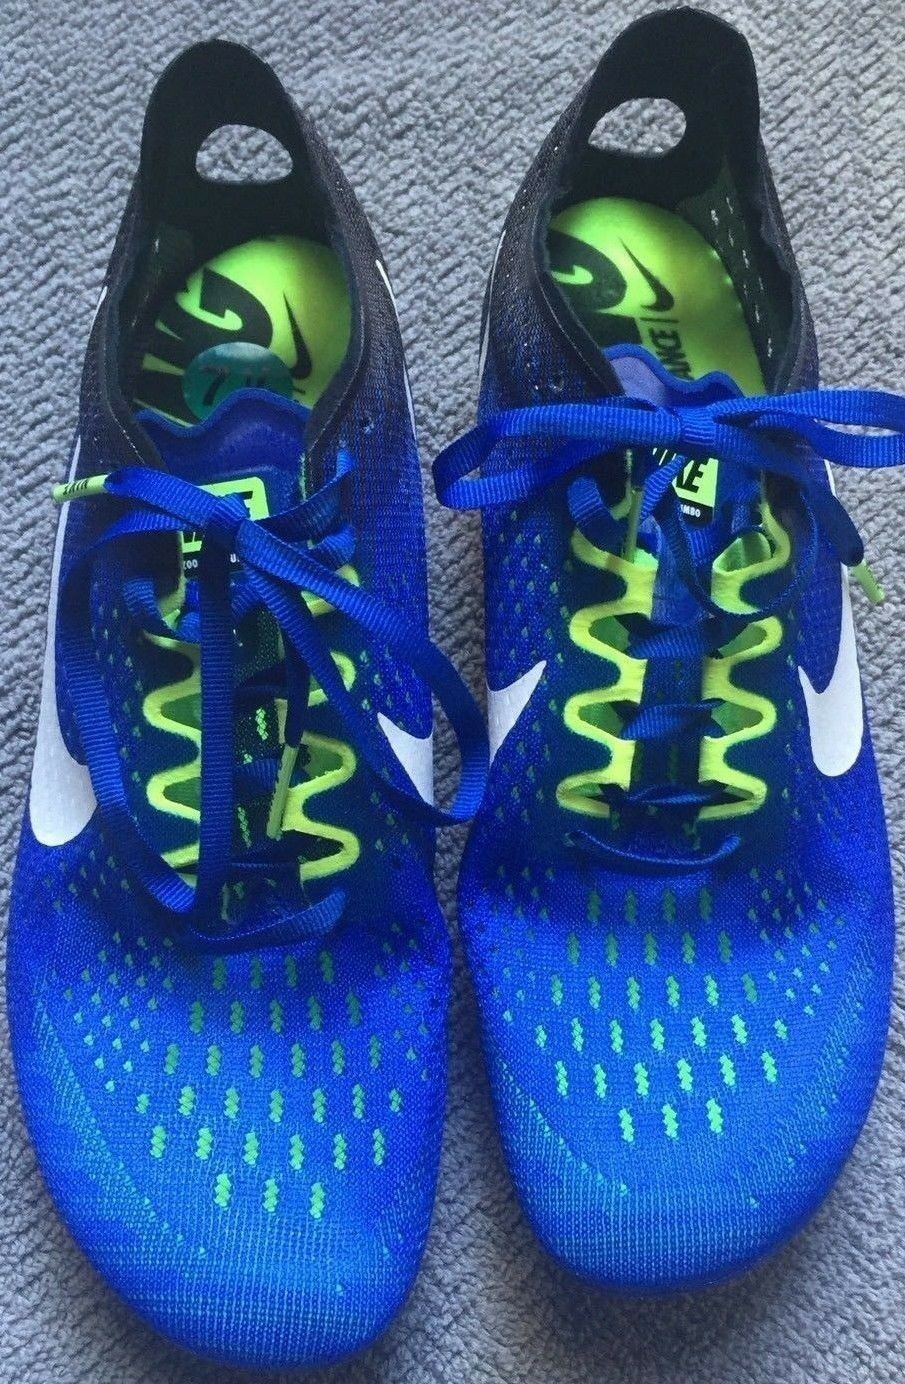 Nike Zoom Matumbo 3 Track Running Spikes bluee White Green (835995-413) Size  7.5